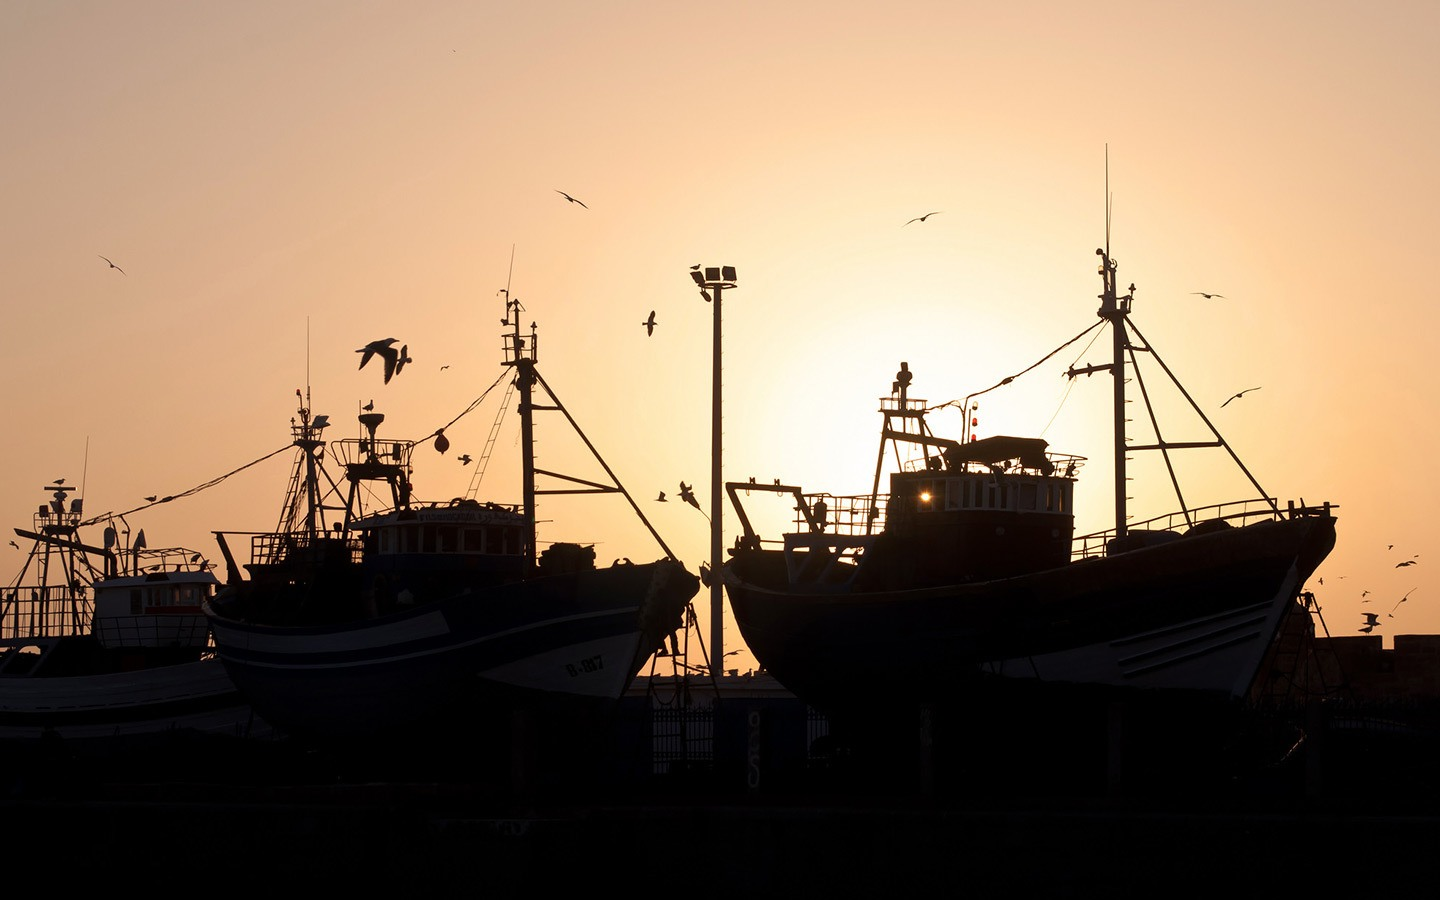 Fishing boats silhouetted against the sunset in Essaouira